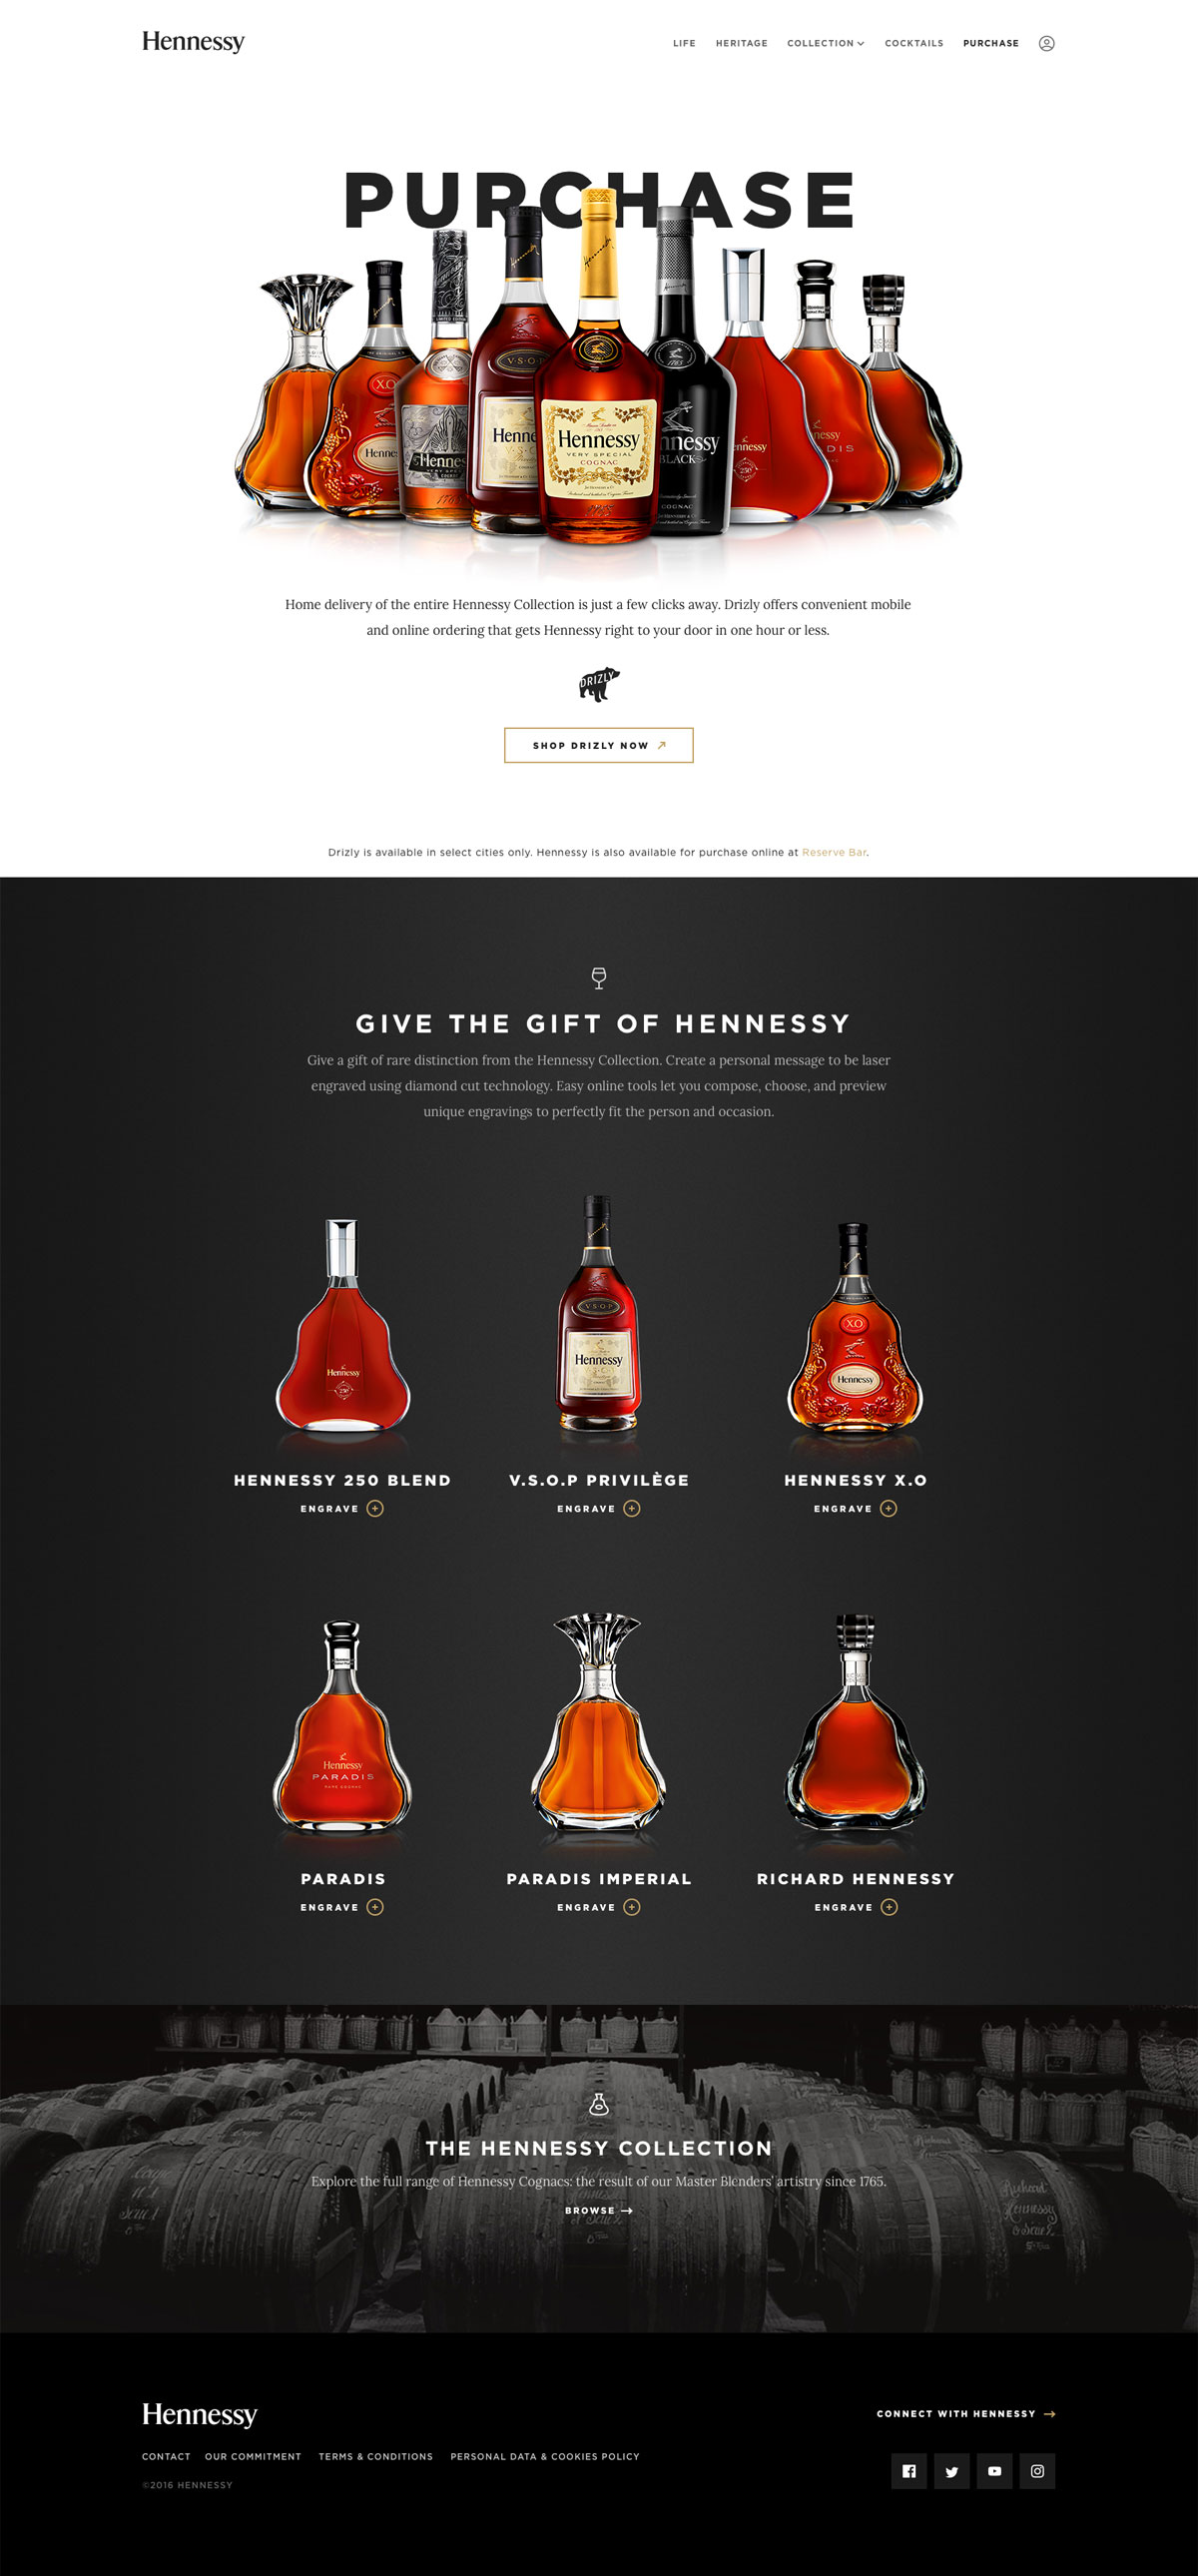 hennessy-screen-purchase